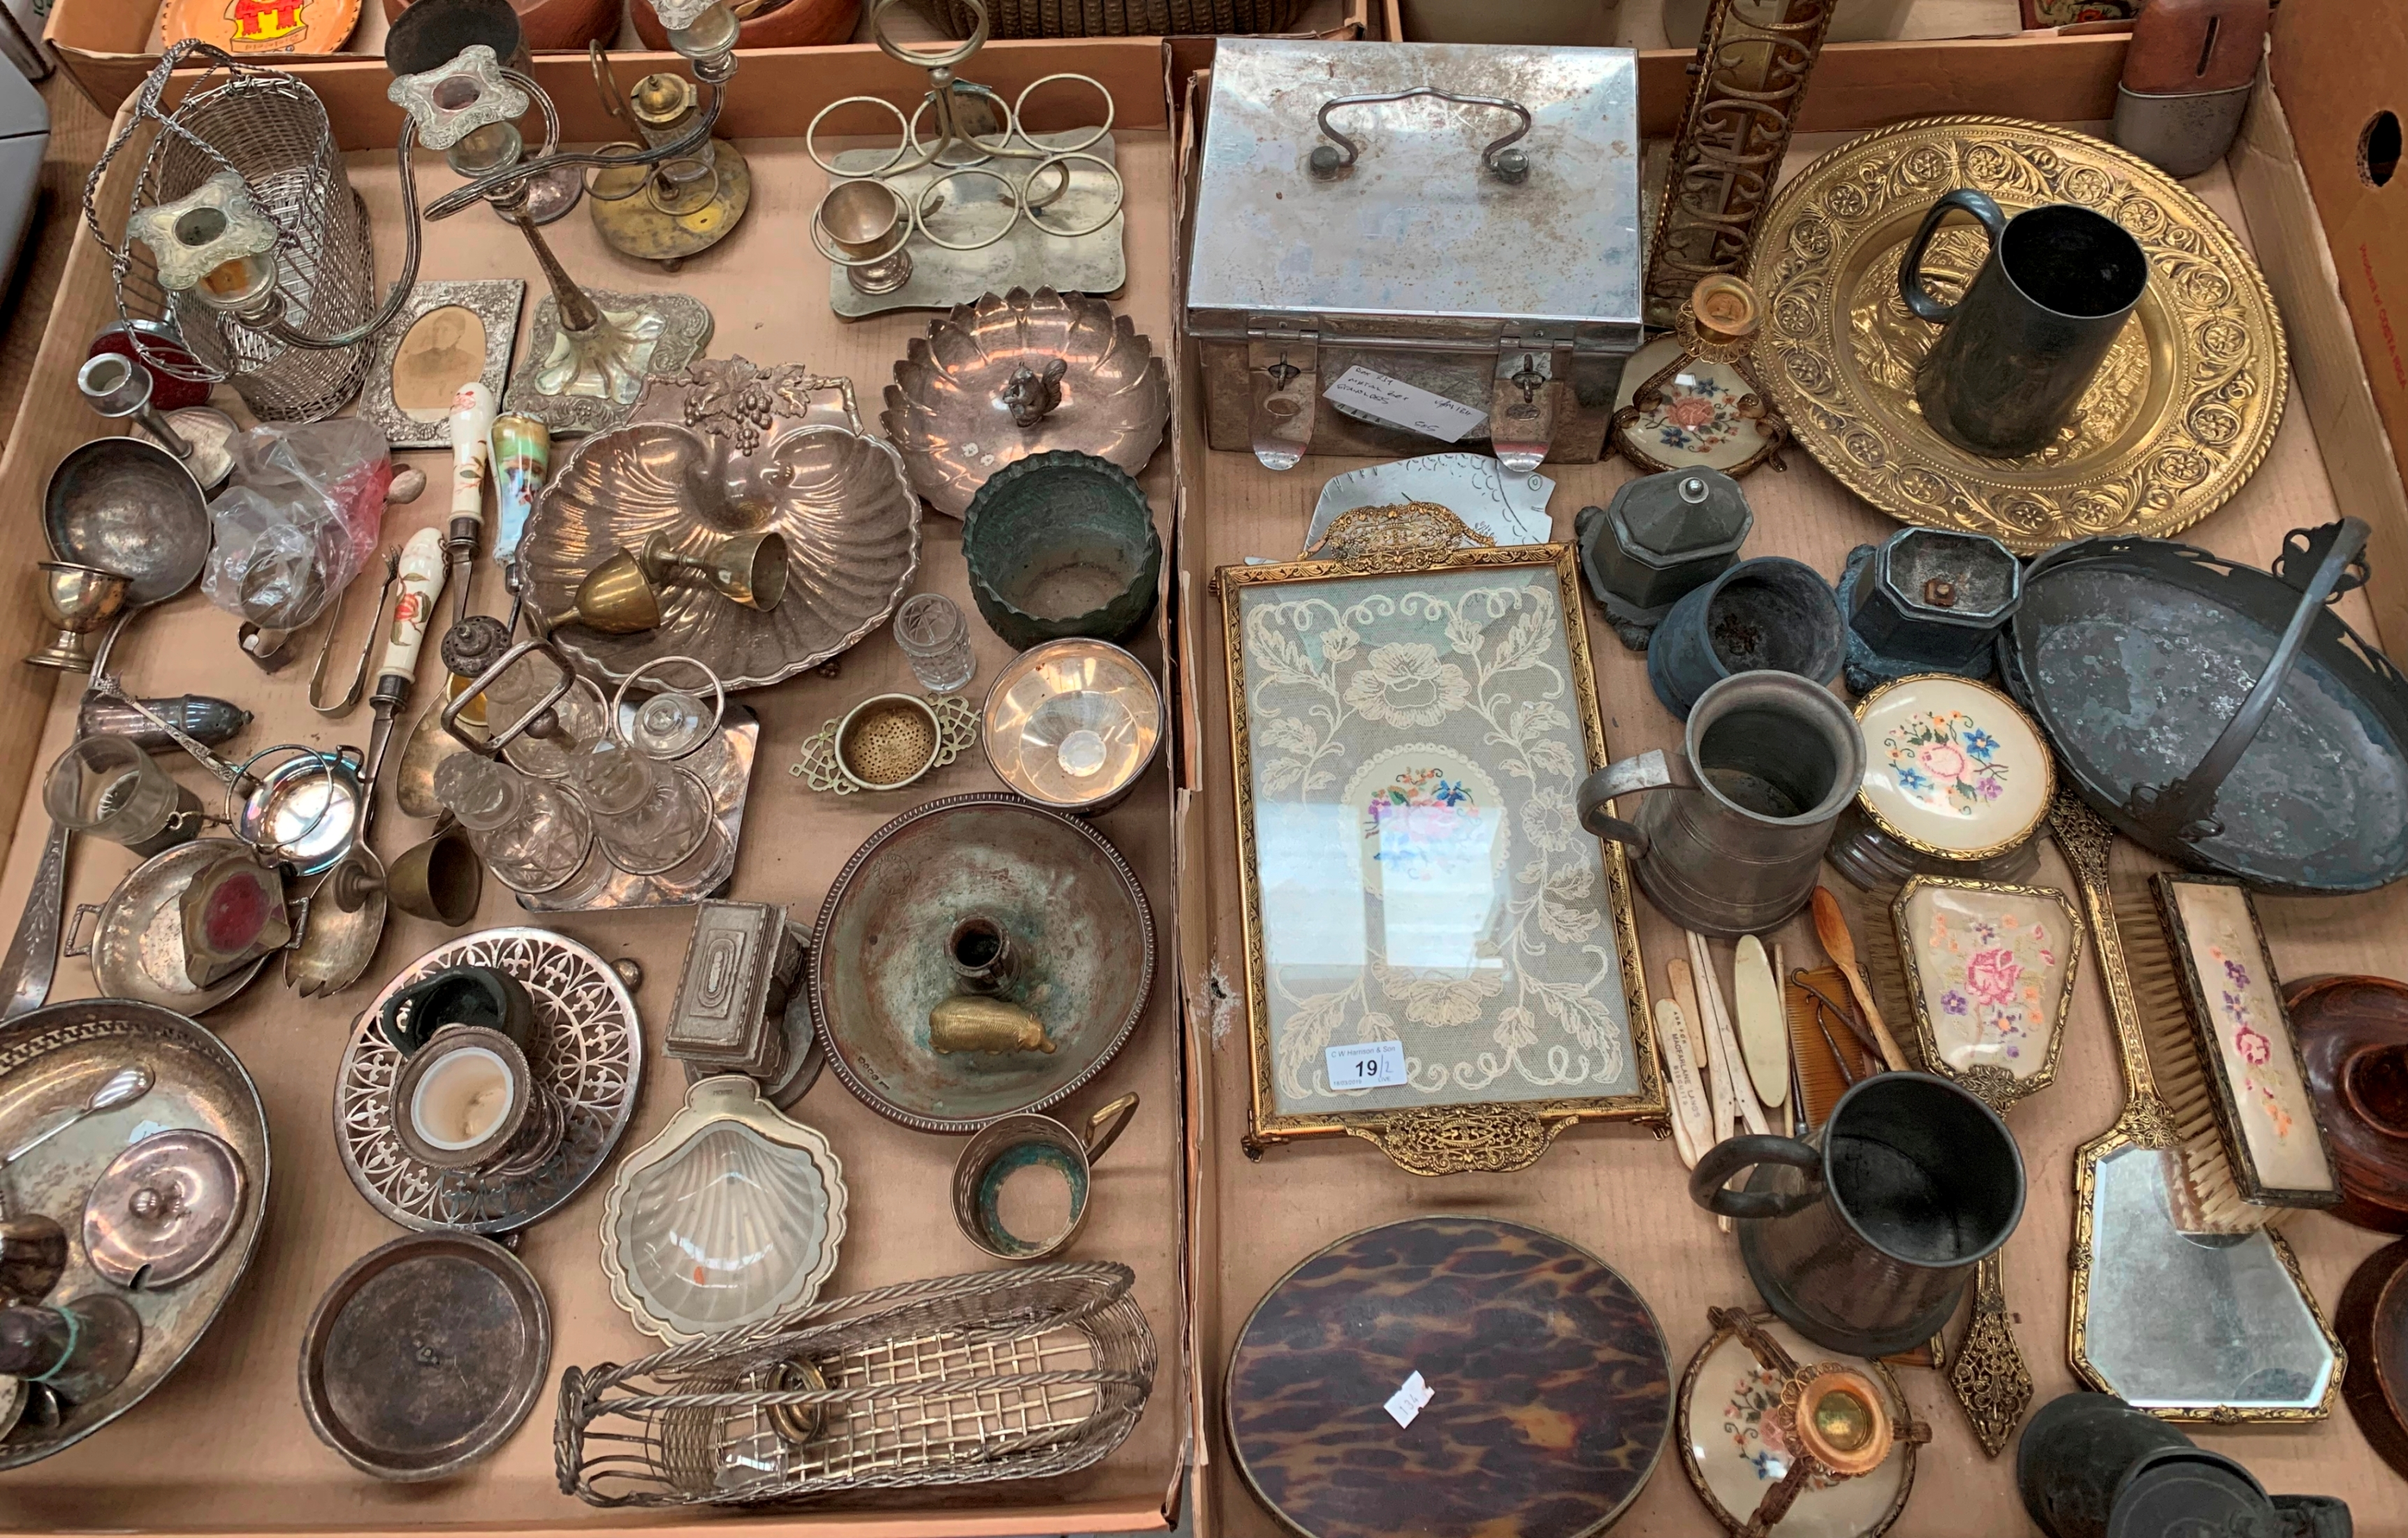 Lot 19 - Contents to two trays - large quantity of plated ware, pewter tankards, stainless steel metal box,